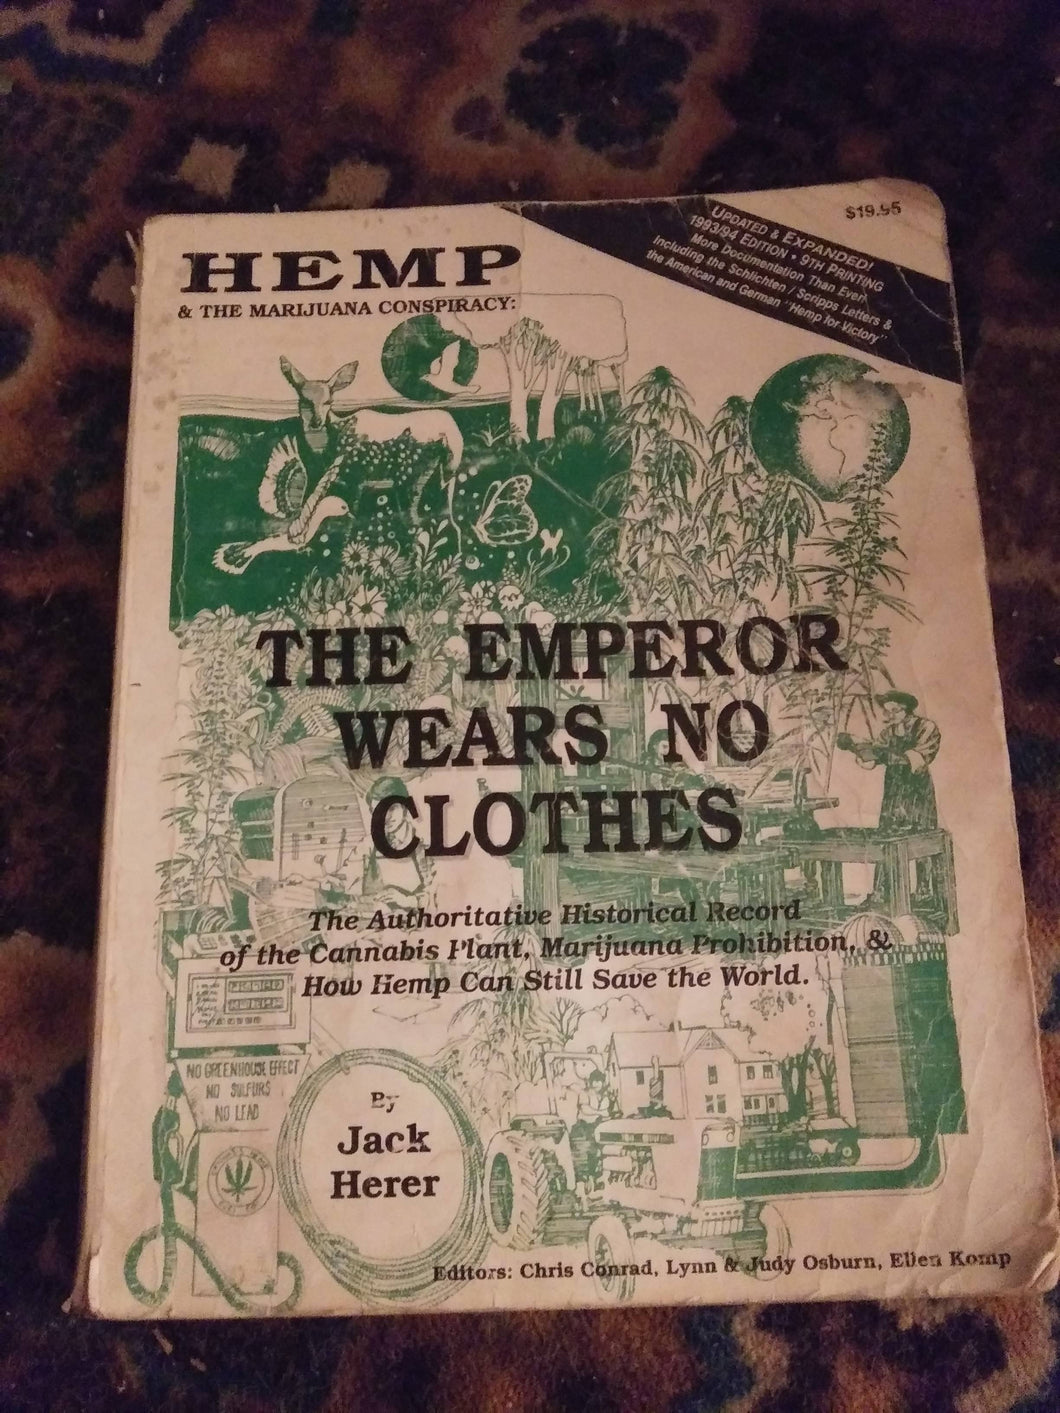 Hemp and The Marijuana Conspiracy: The Emporor Wears No Clothes by Jack Herer